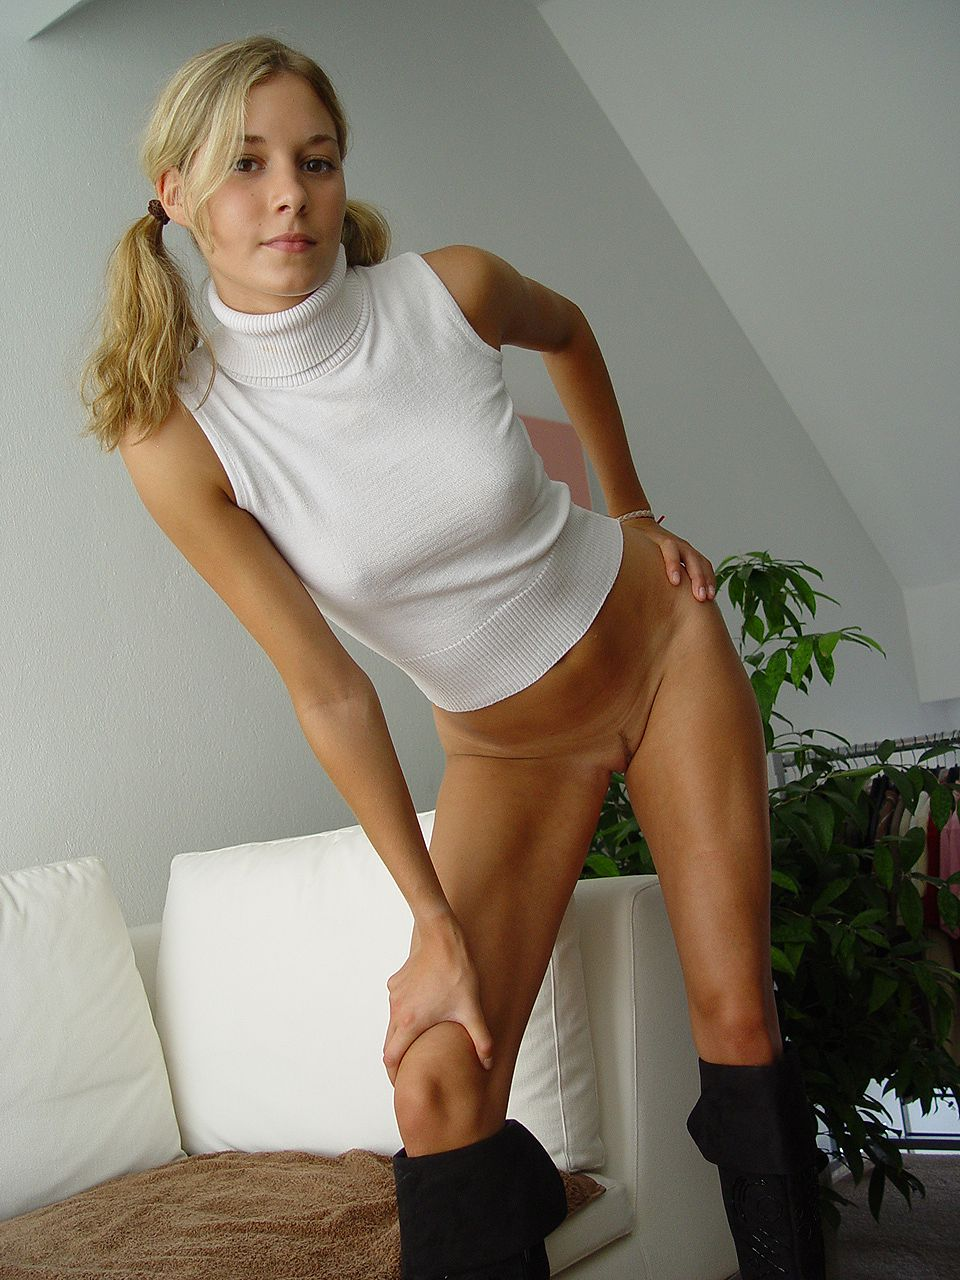 blonde-amateur-bottomless-naked-15